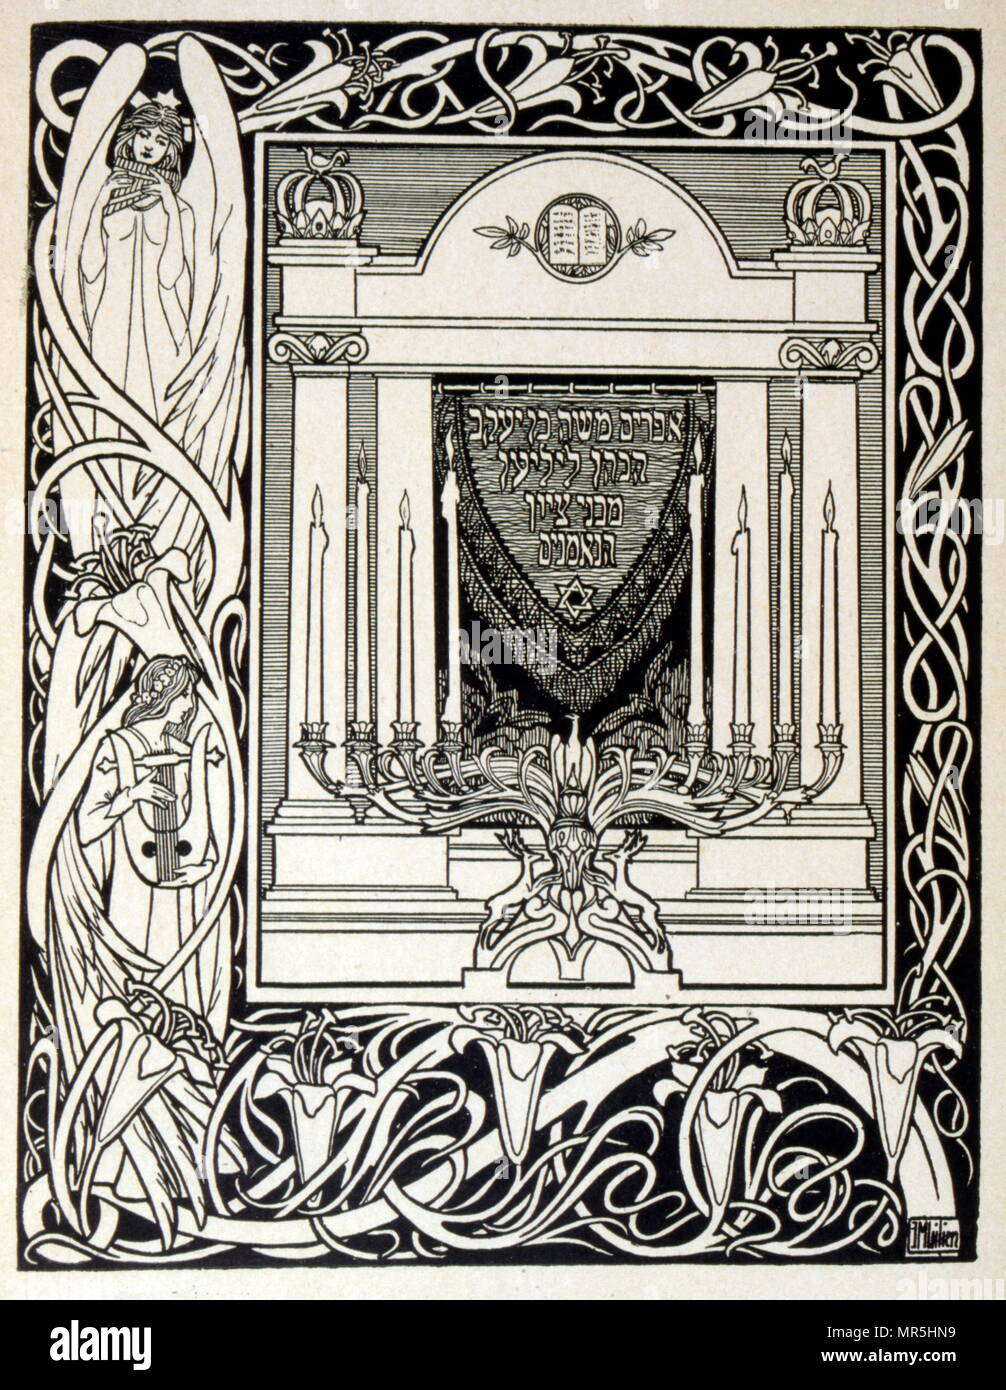 Judah', a collection of ballads by the non-Jewish poet Börries von Münchhausen 1874 - 1945. Illustrated by Ephraim Moses Lilien (1874–1925), art nouveau illustrator and printmaker, noted for his art on Jewish themes. He is sometimes called the 'first Zionist artist. Münchhausen's relationship to Judaism remained ambivalent: Munchhausen did not consider the 'Jewish race' inferior, but merely wanted to prevent a 'mixture' with the non-Jewish Germans. - Stock Image